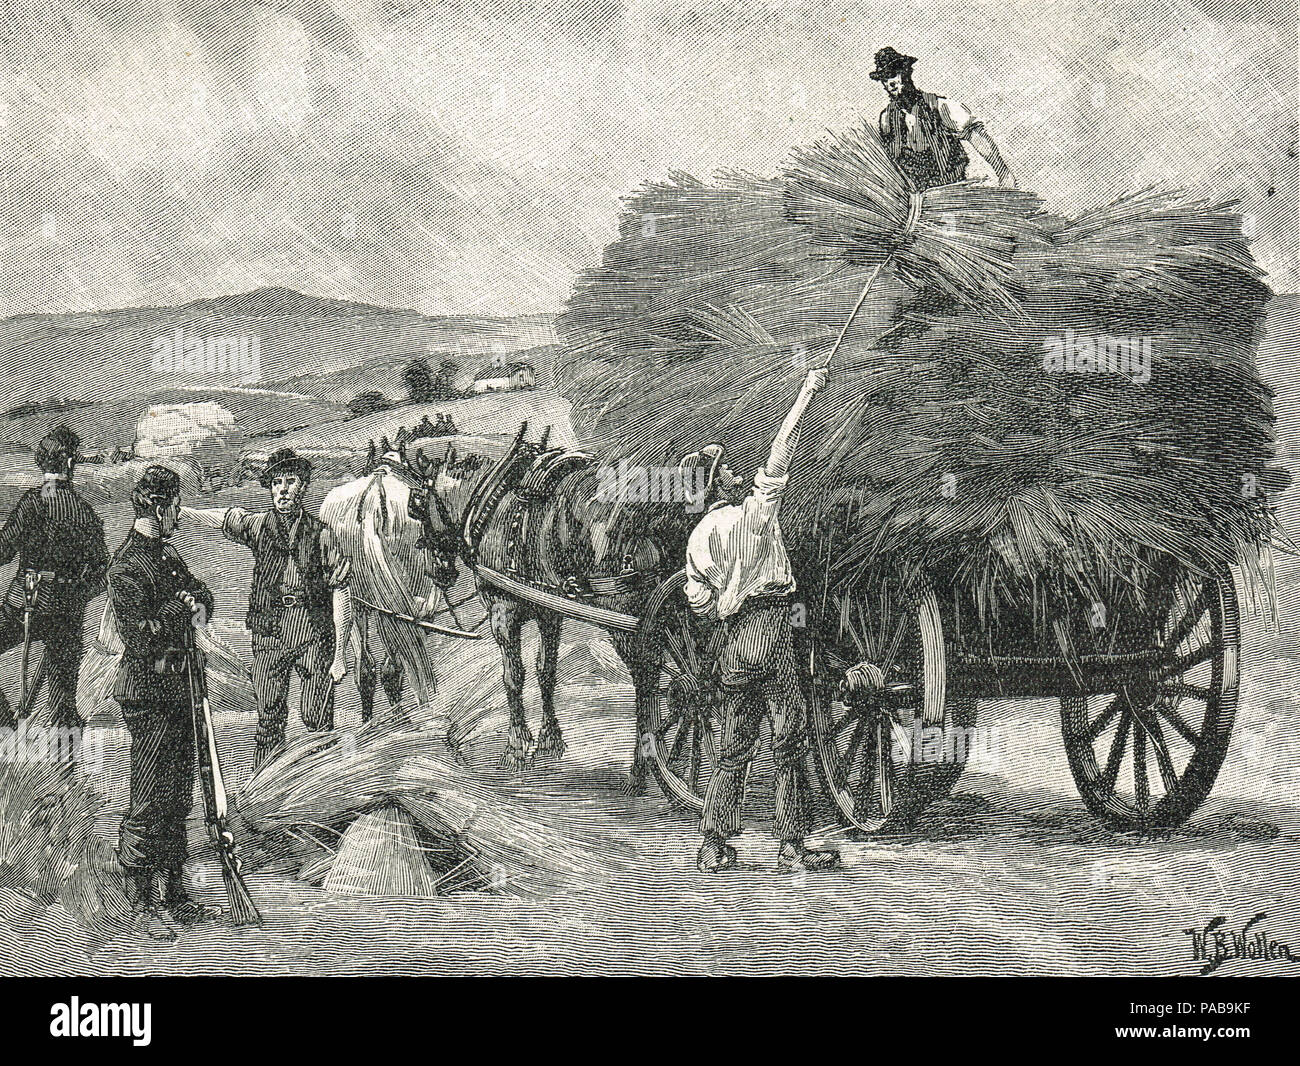 The saving of Captain Boycott's crops, 1880.  Orangemen from County Cavan and County Monaghan harvesting the crops, protected by the 19th Royal Hussars, and the Royal Irish Constabulary during the isolation campaign by the Irish National Land League - Stock Image